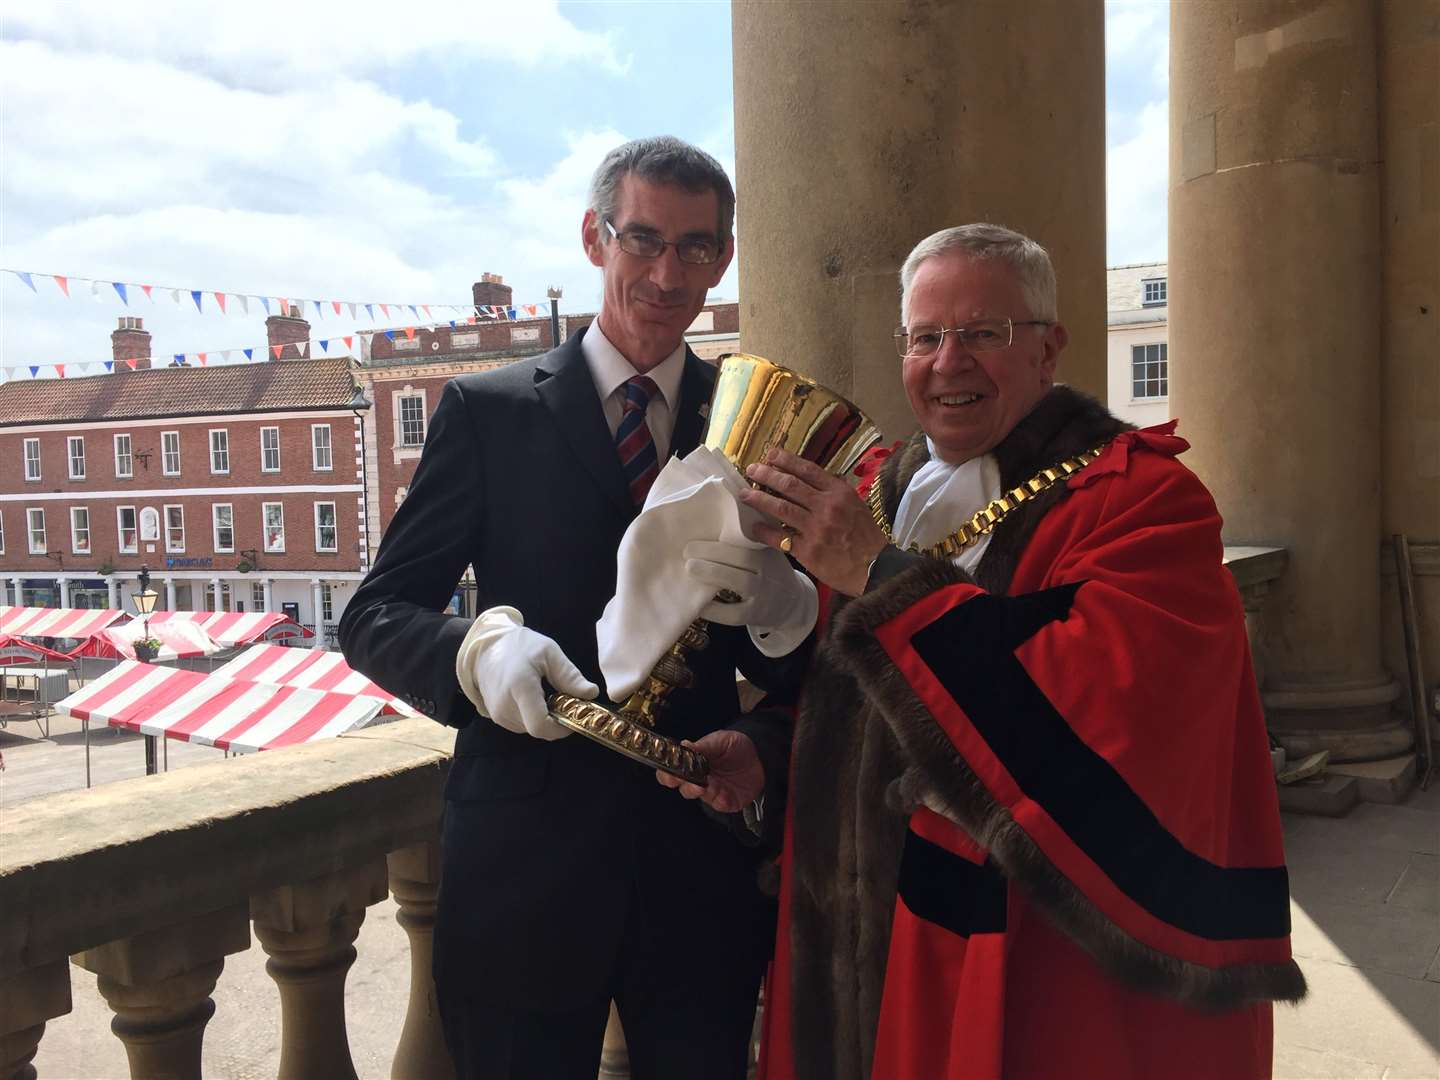 The Mayor of Newark, Mr Tony Roberts, is offered the traditional Loving Cup by the mayor's officer, Mr Pete Tomlinson. 100618LM1-1